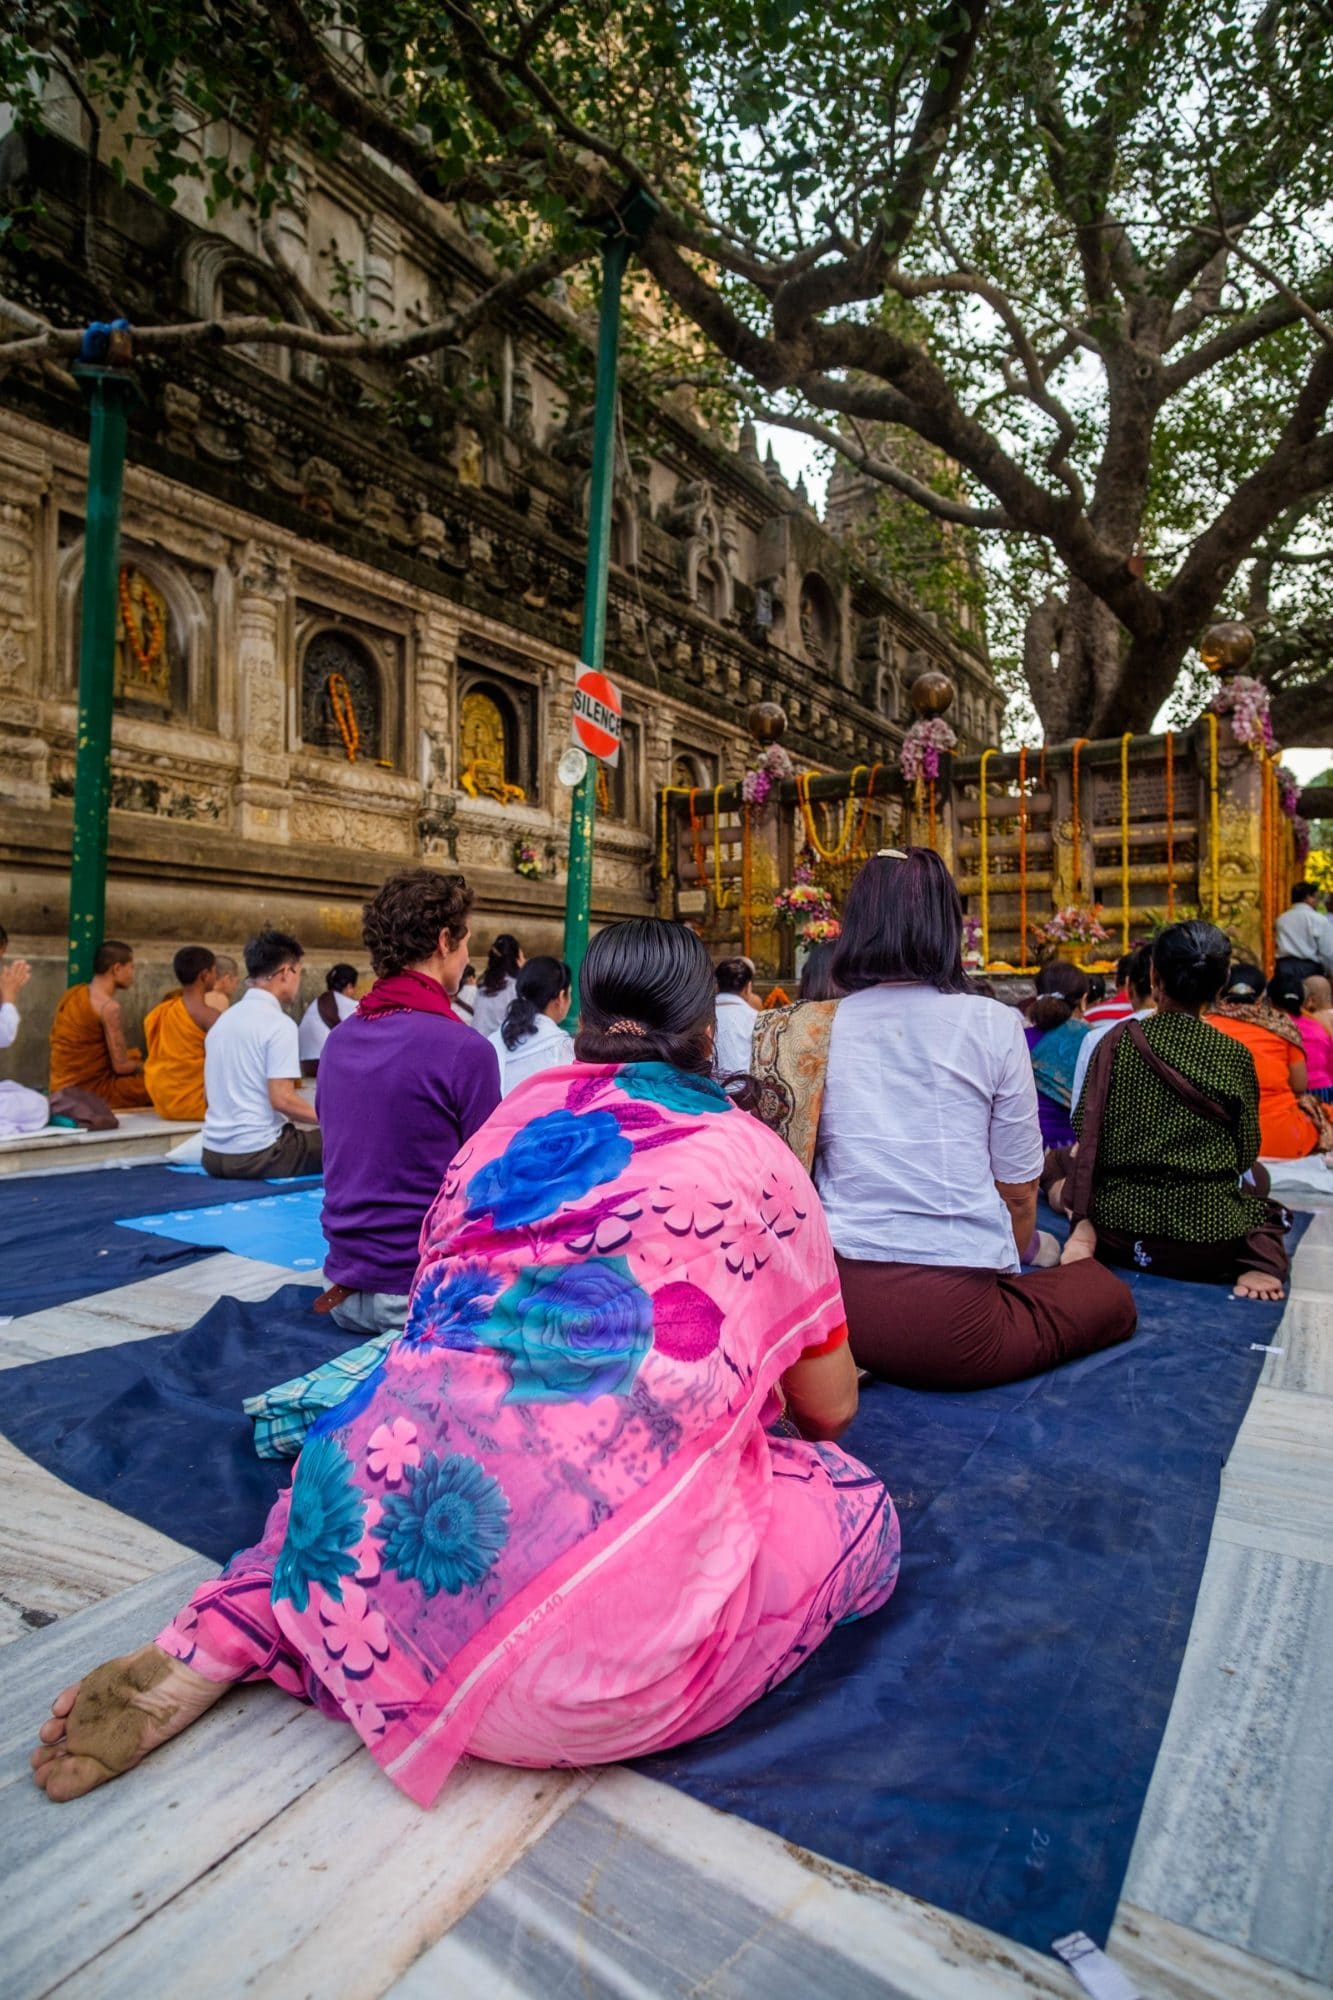 Pilgrims meditate before the Bodhi Tree in Bodhgaya